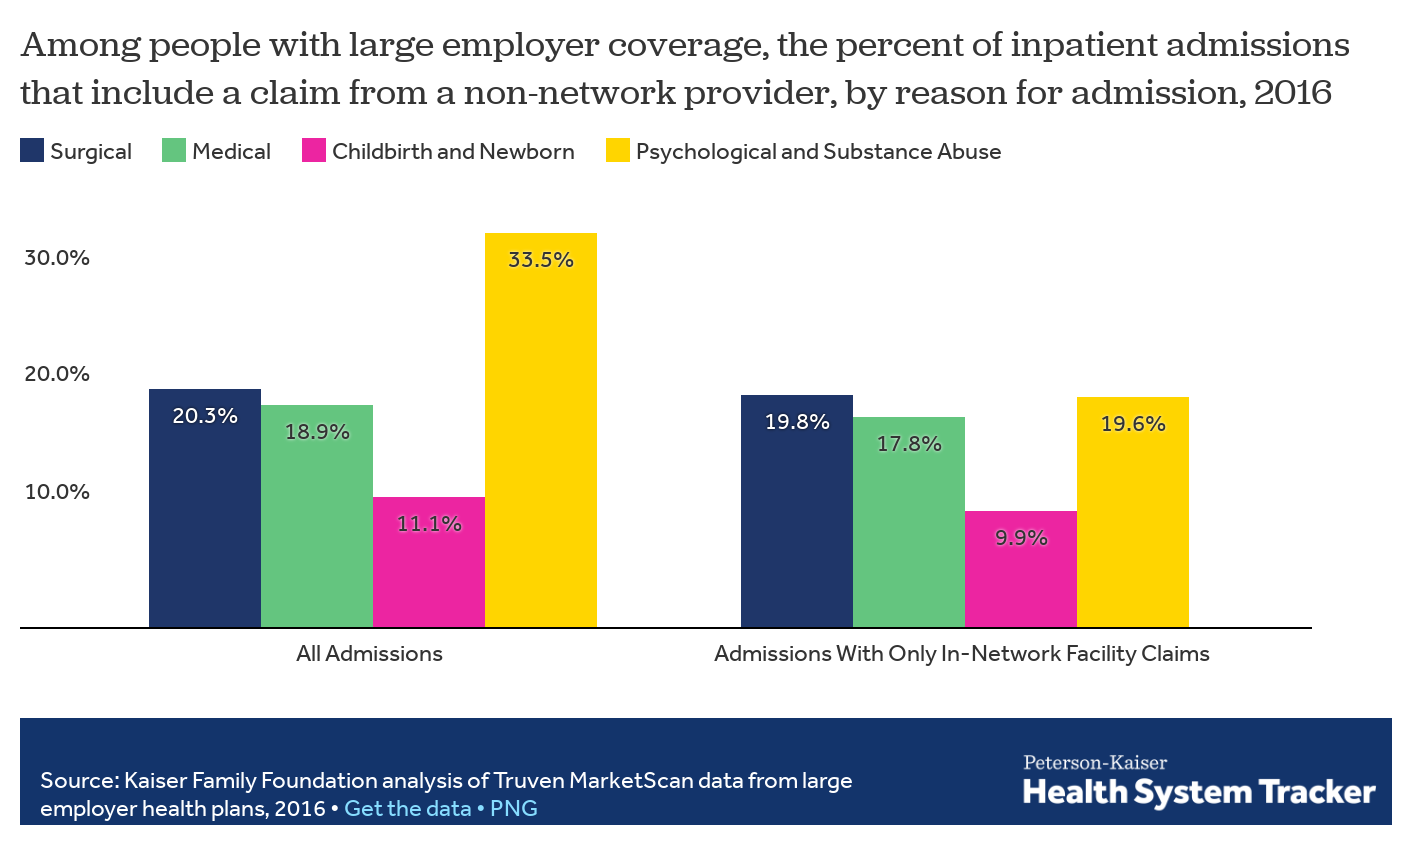 Nearly 20% of Employees Have Inpatient Out-of-Network Claims